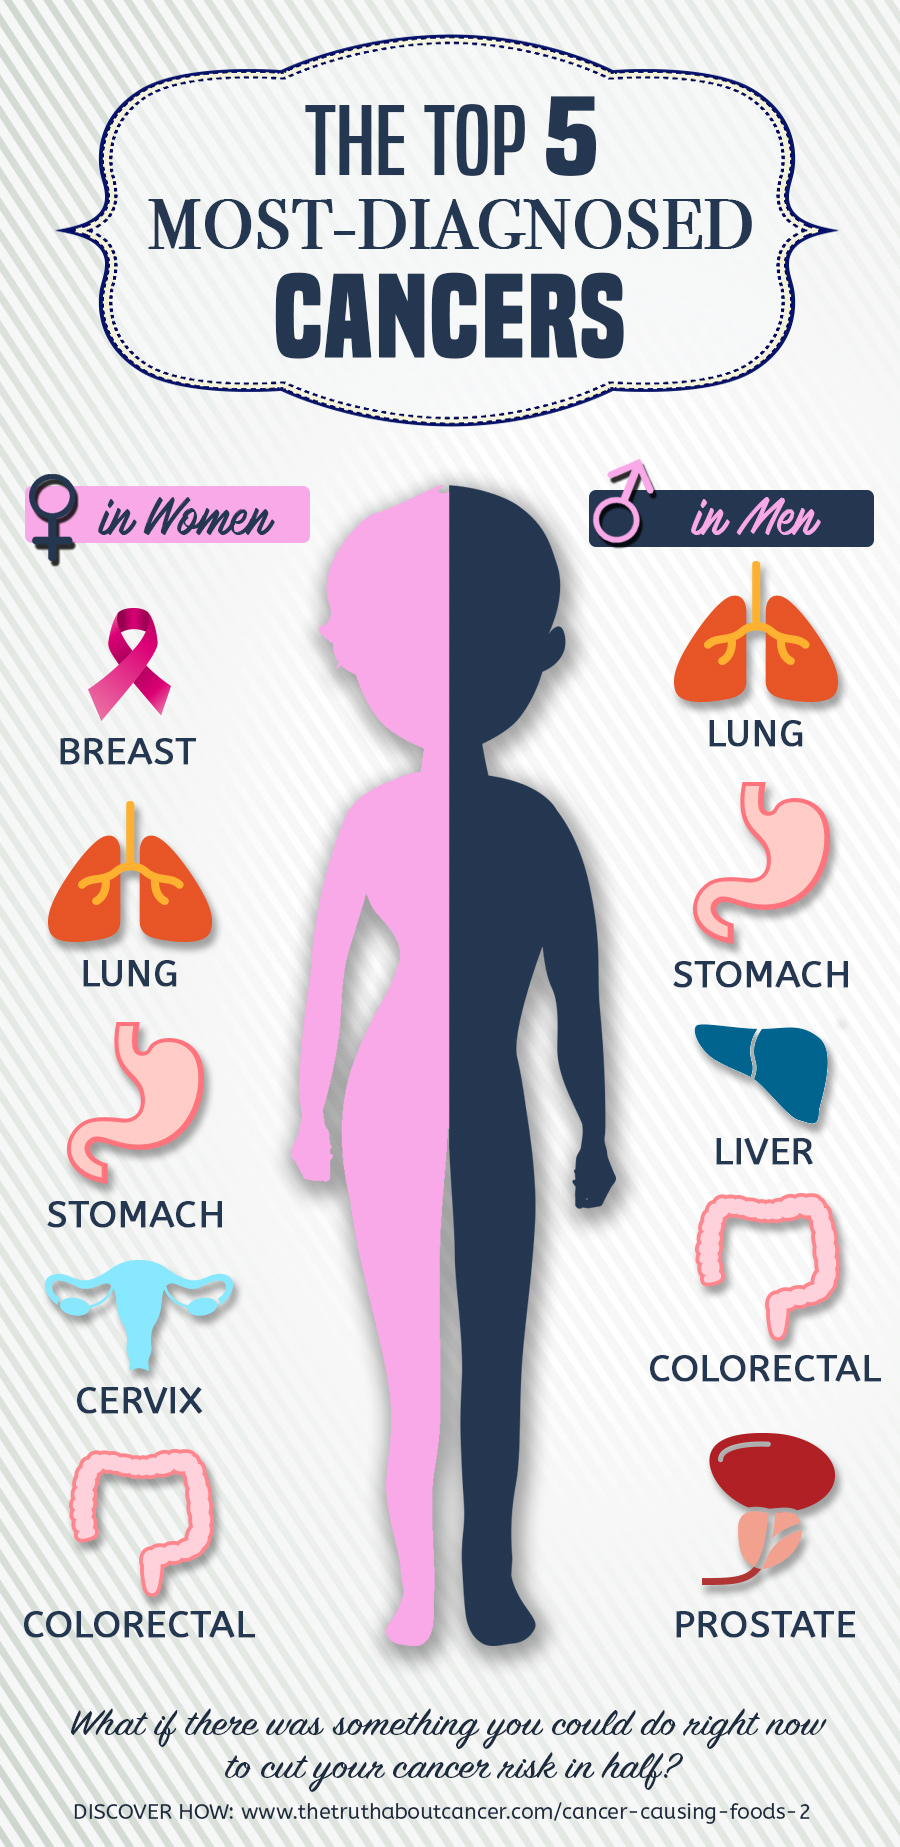 The top 5 most-diagnosed cancers in men and women.